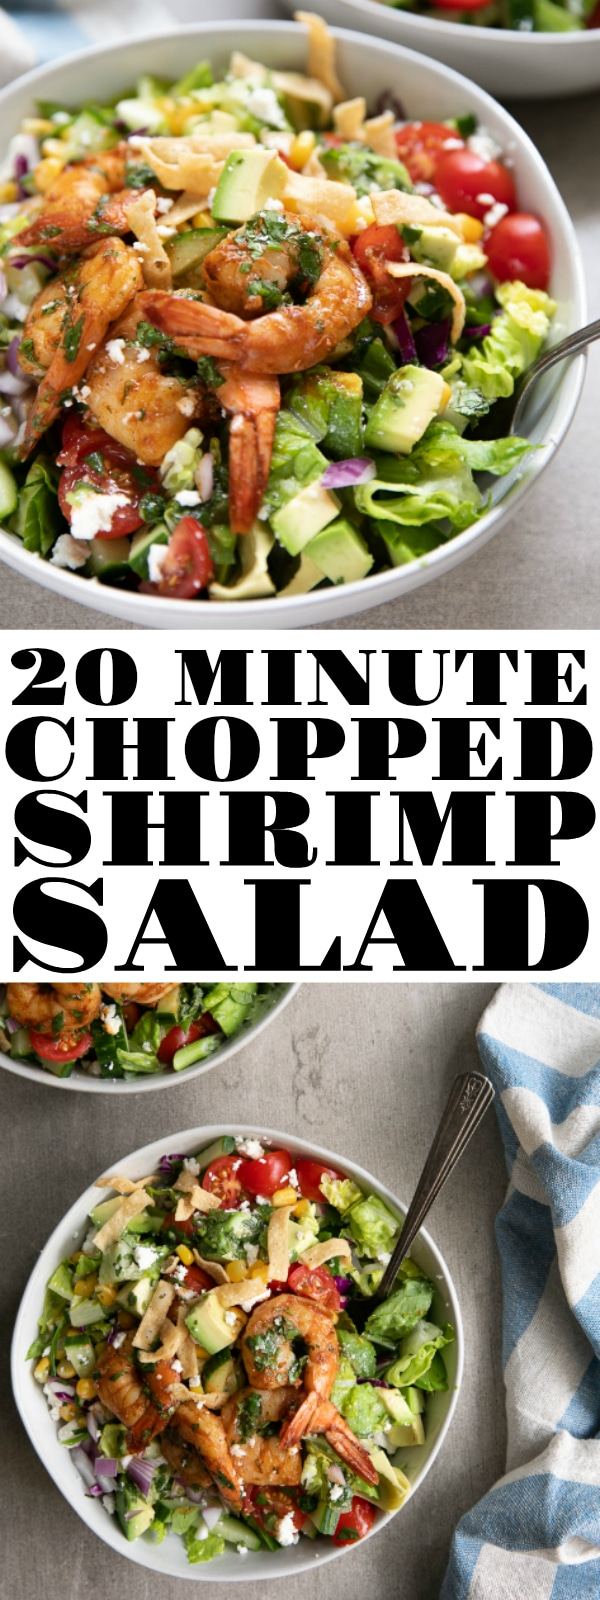 Chopped Shrimp Salad with Cilantro Lime Vinaigrette #salad #shrimp #choppedsalad #shrimpsalad #easyrecipe #cilantro #lowcarb #easydinner | For this recipe and more visit, https://theforkedspoon.com